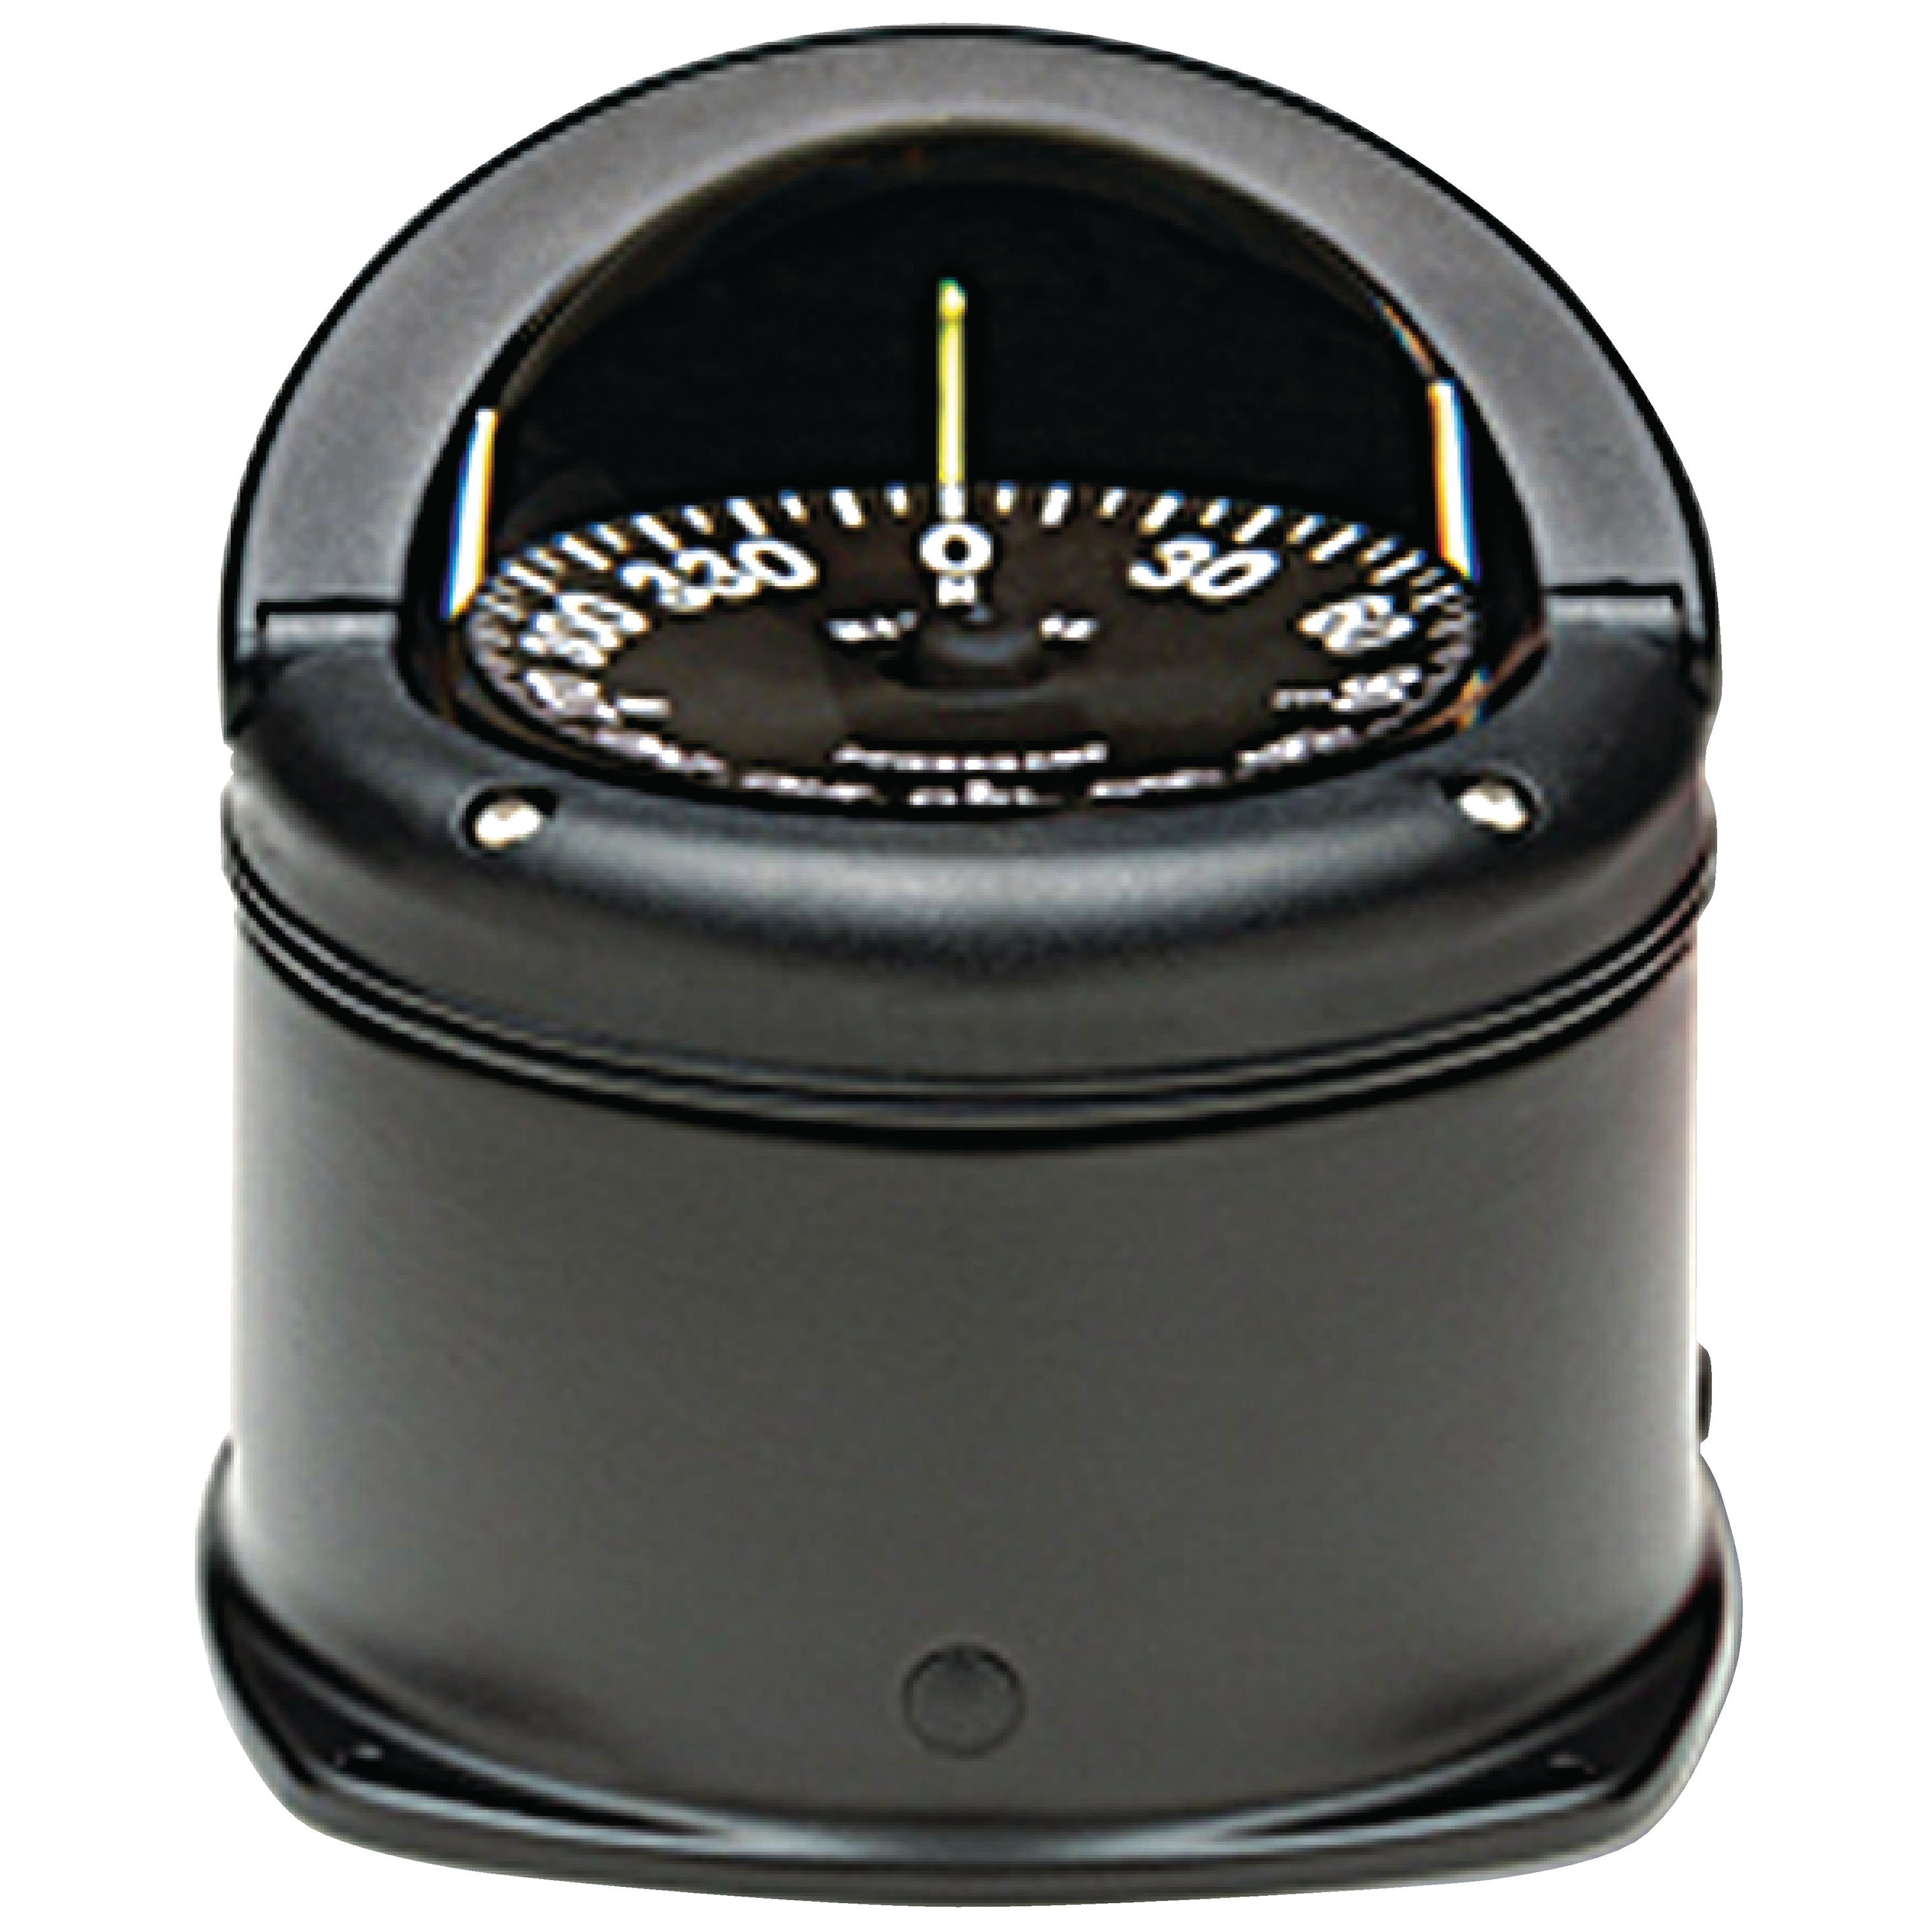 Ritchie HD744 Helmsman Black Flat Dial Boat Compass with Green Light & Deck Mount by E.S. Ritchie & Sons Inc.